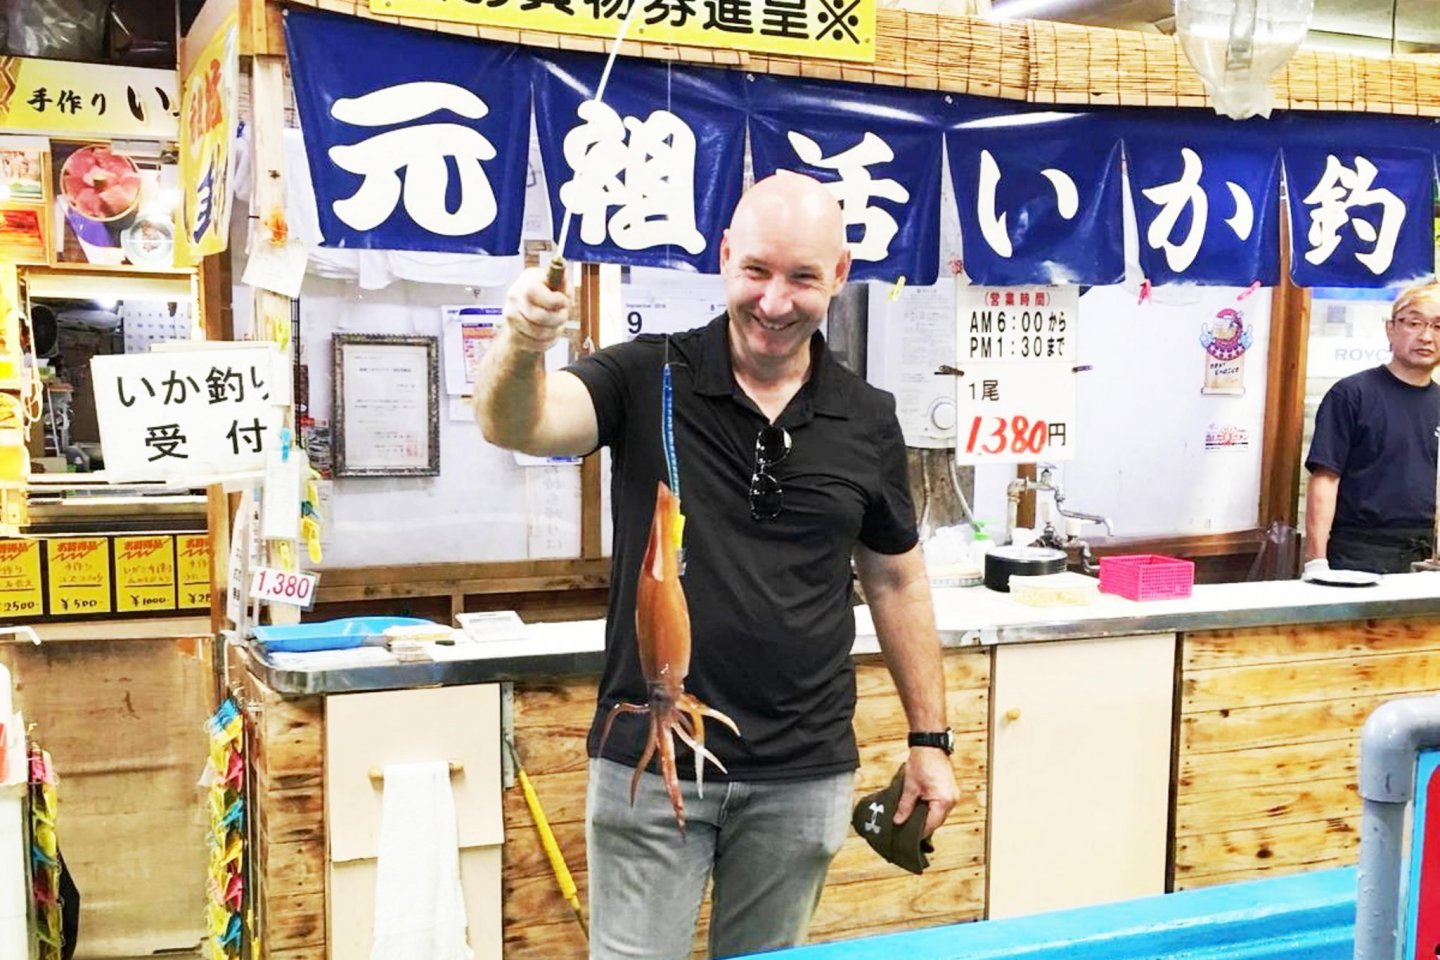 Gotcha! Our cameo fisherman gets his prized squid